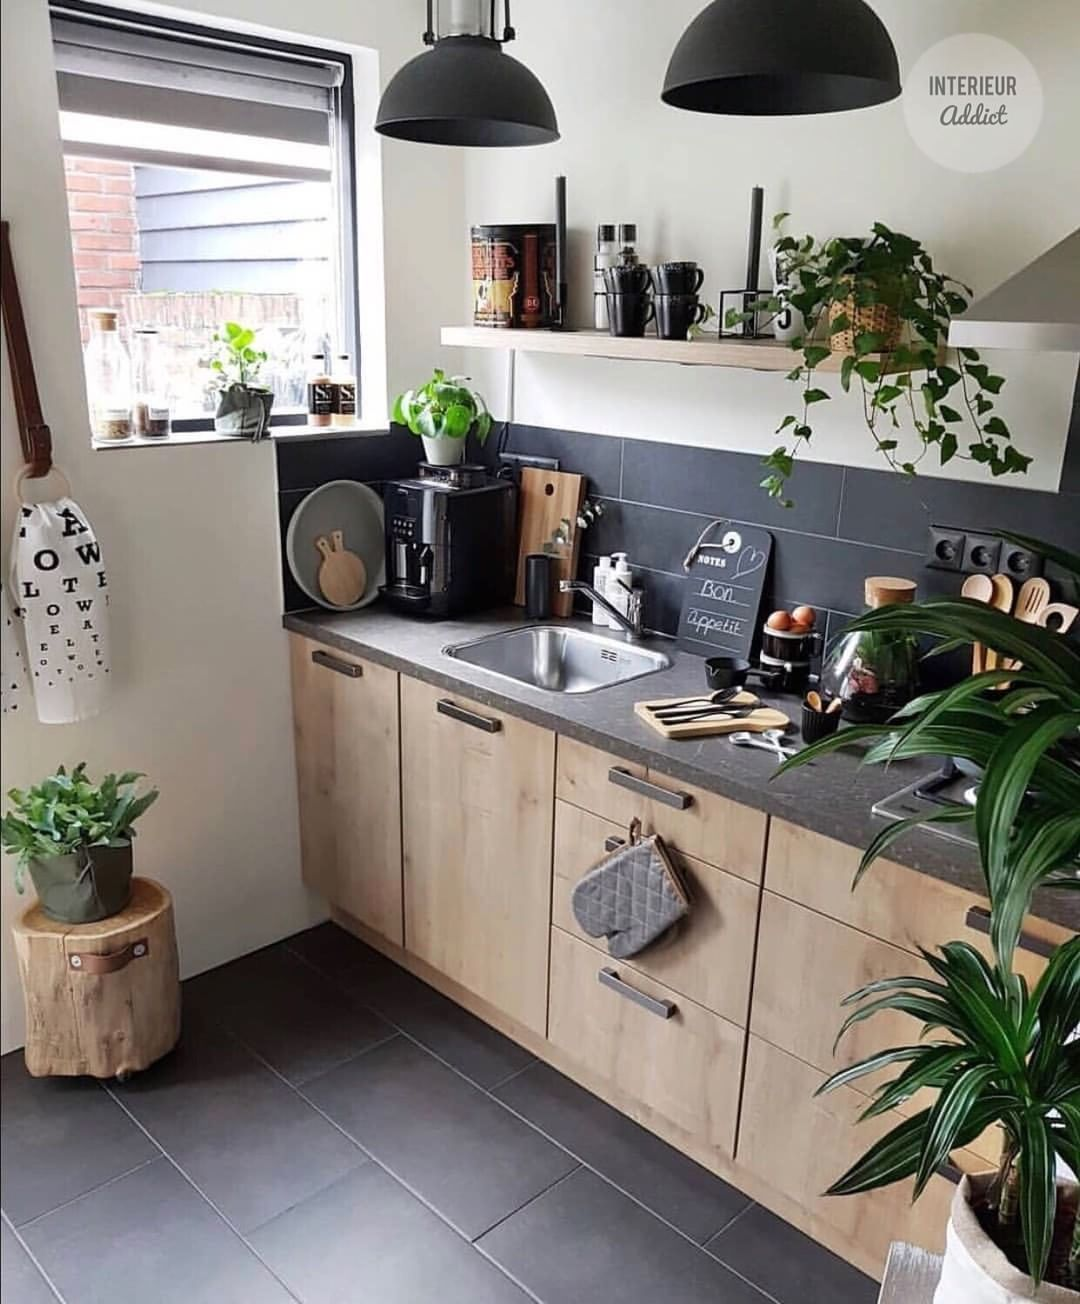 Low Budget Kitchen Cabinets: Pin By Nora Bethlehem On Kuechentraum